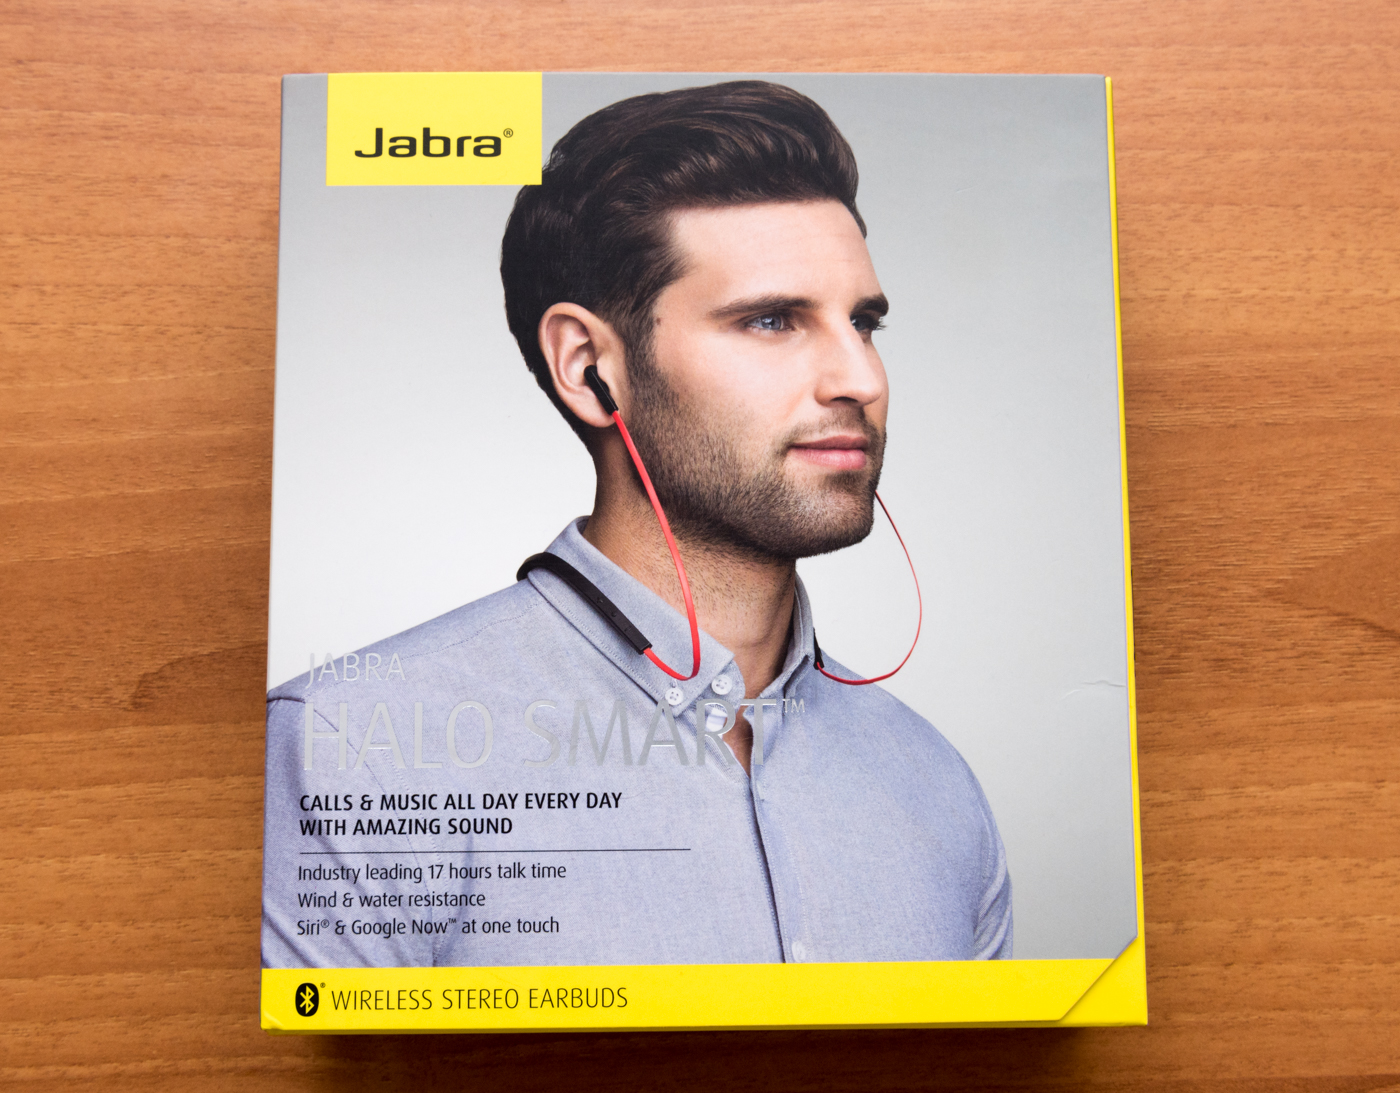 Jabra Halo Smart scatola